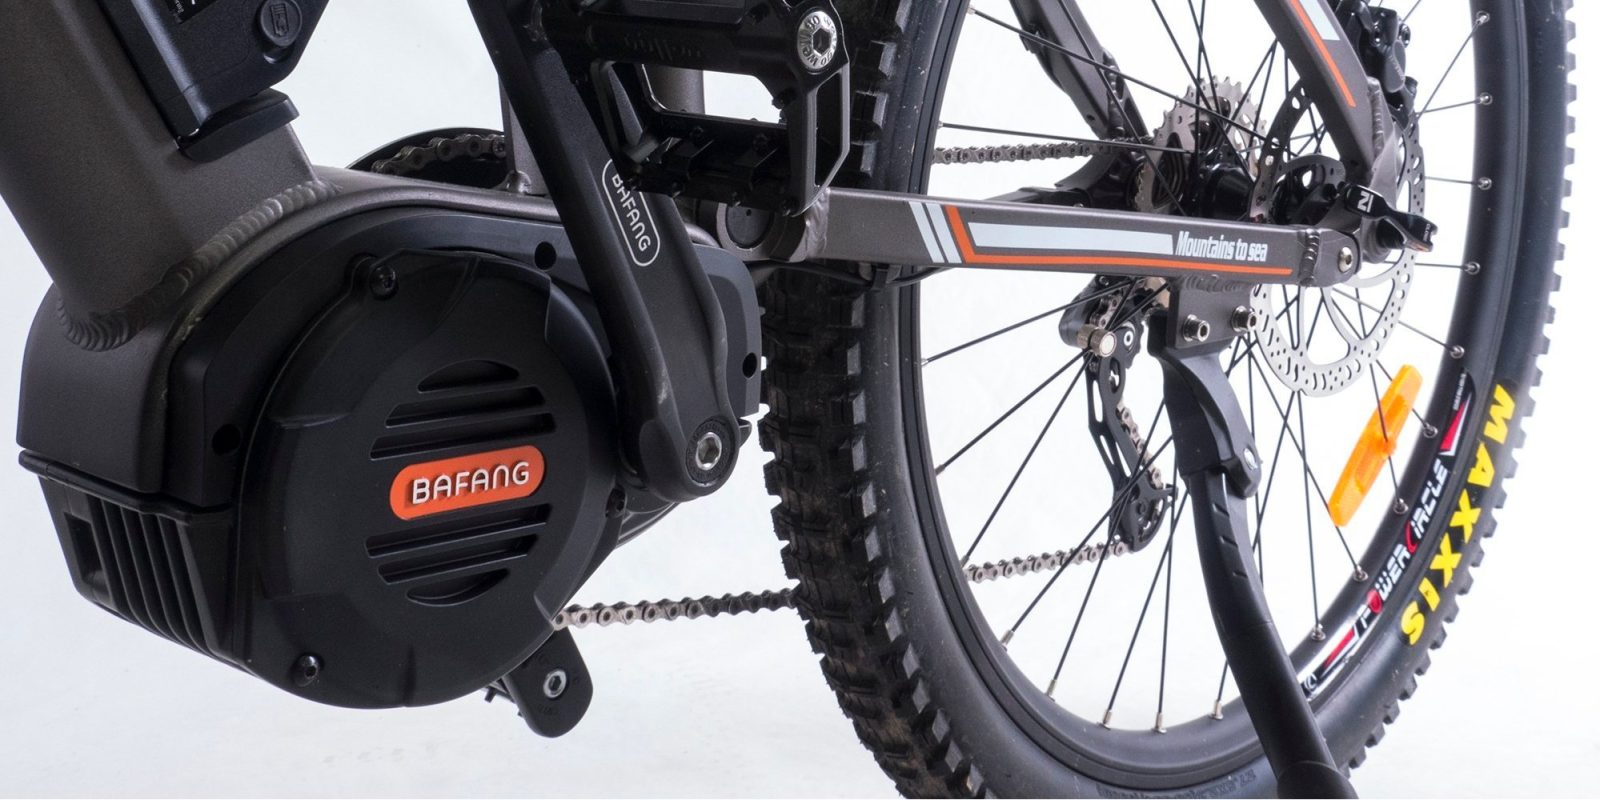 Electric Bike Motor >> Bafang Ultra Mid Drive Offers Over 2 Kw Of Power High